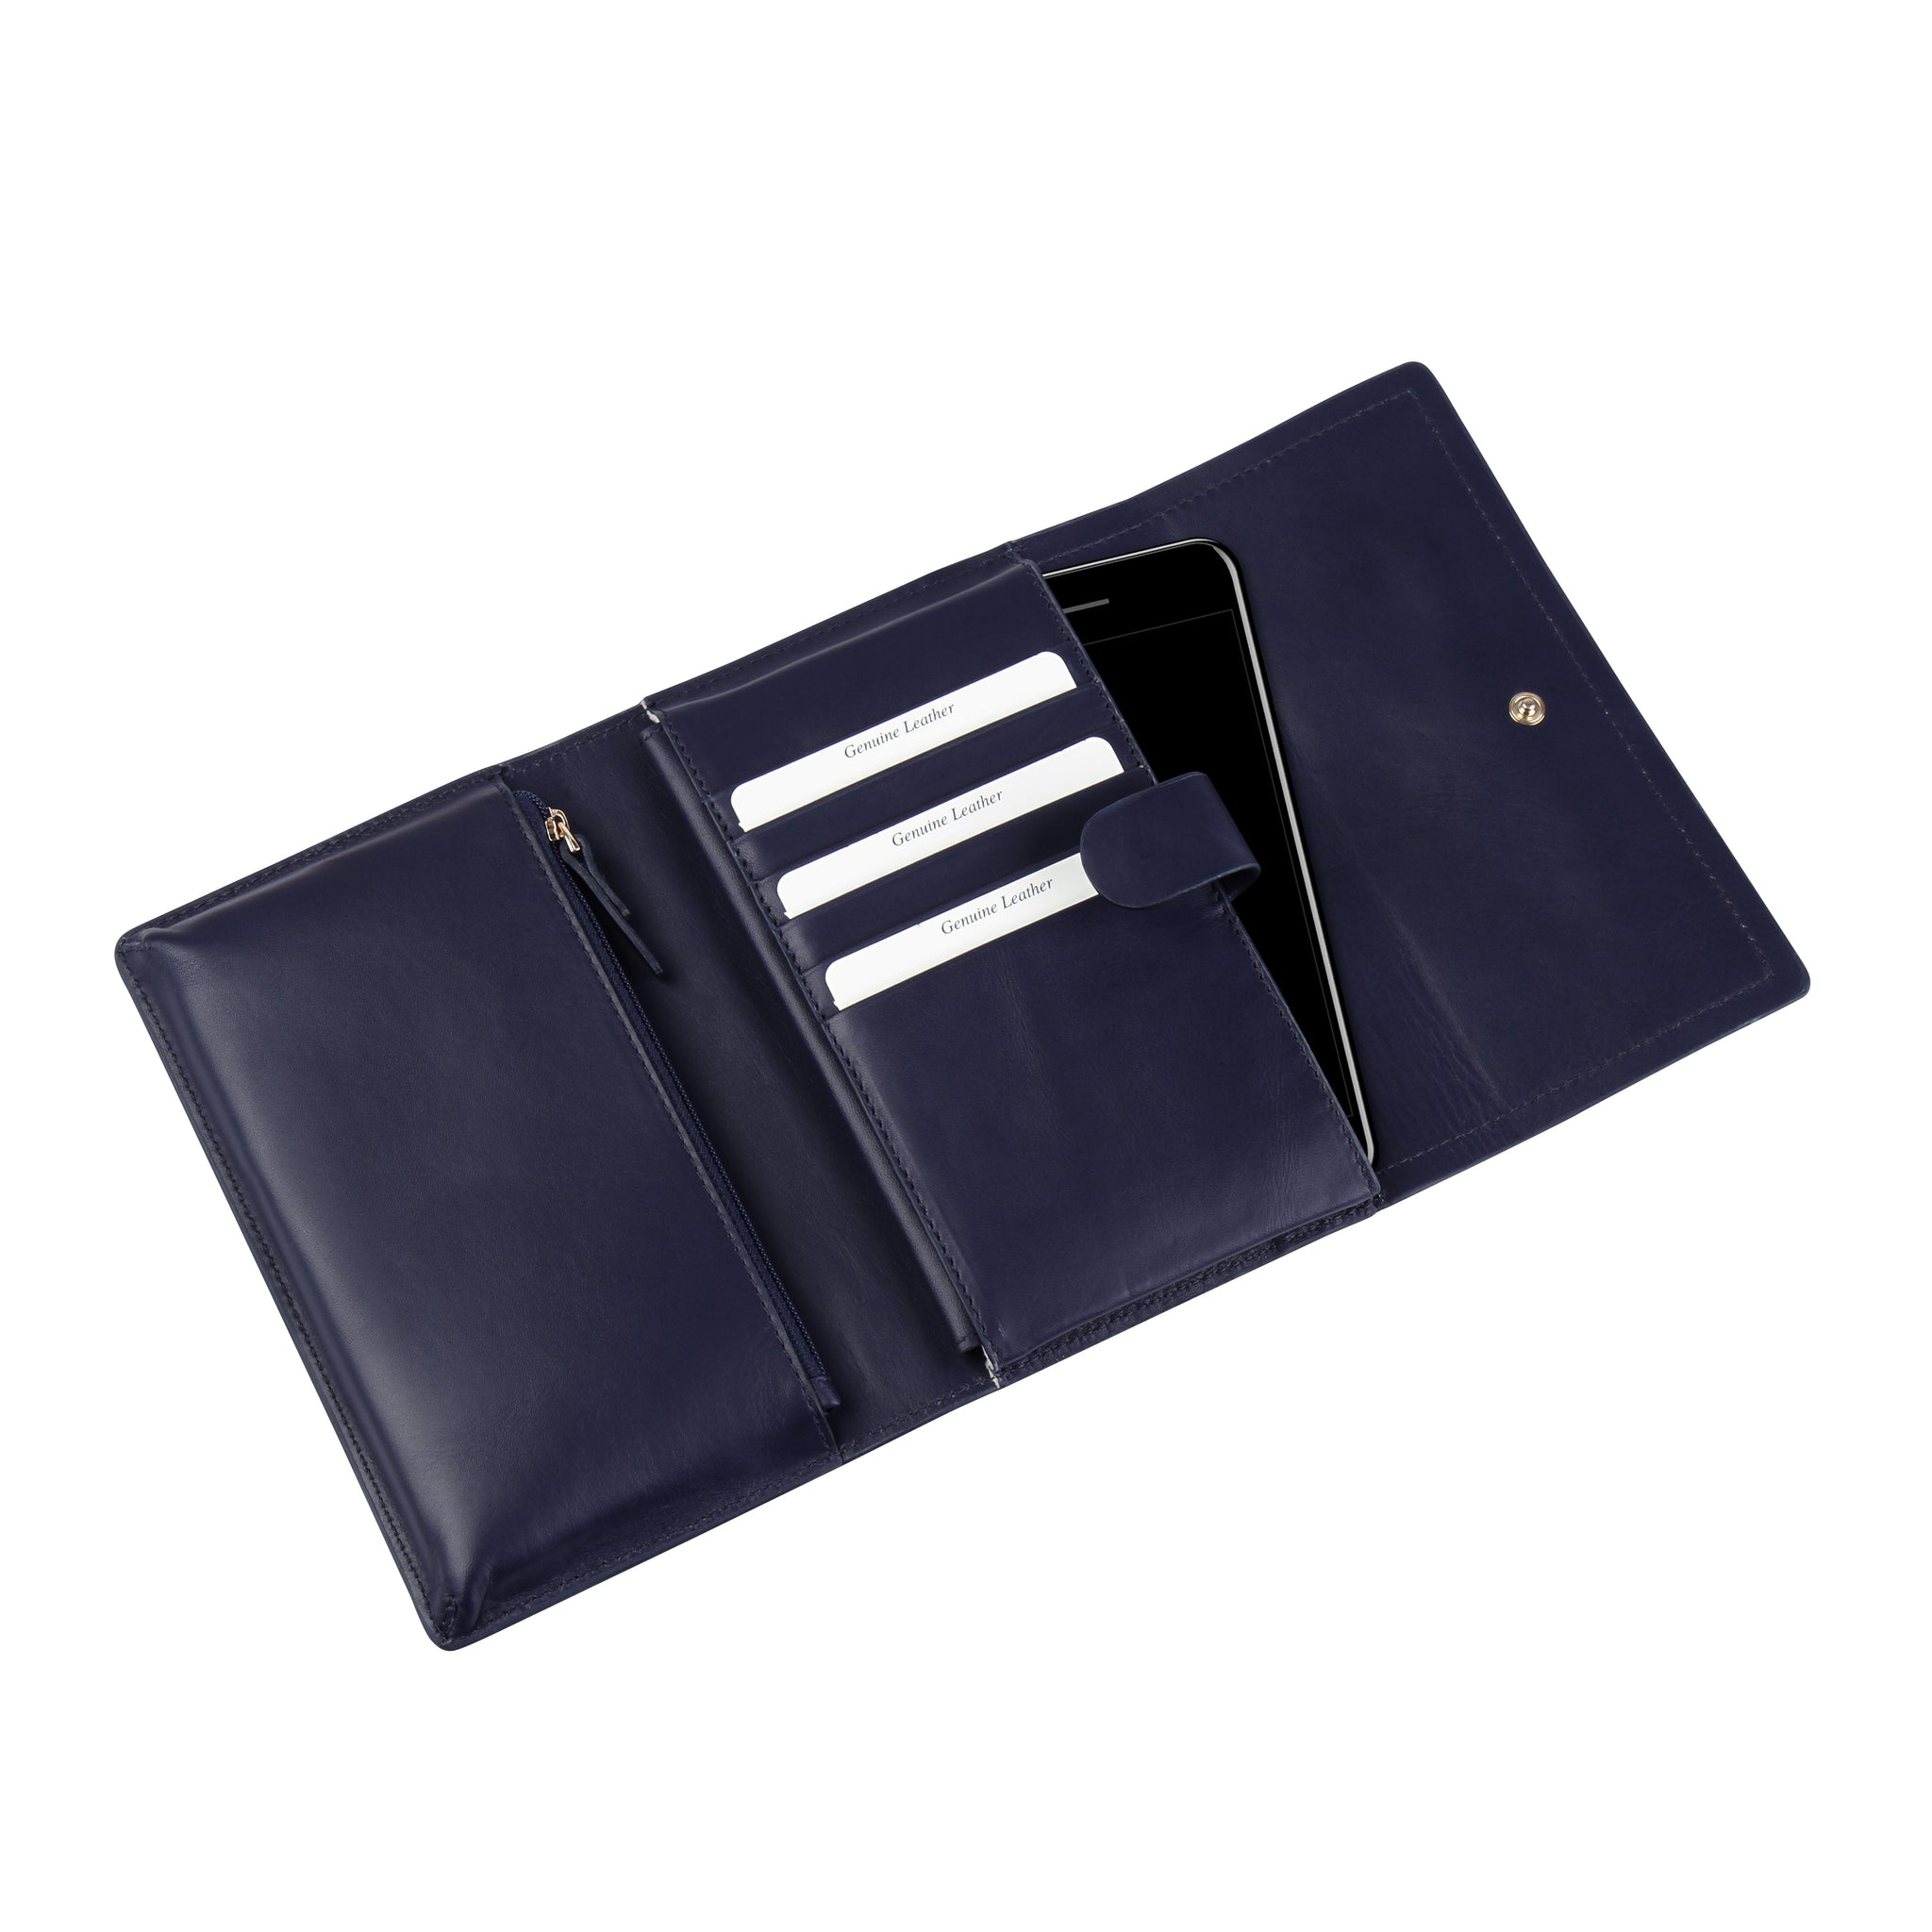 A convertible leather navy, nude and red phone wallet with a knot detail in front that could be used as a crossbody bag, interior image.